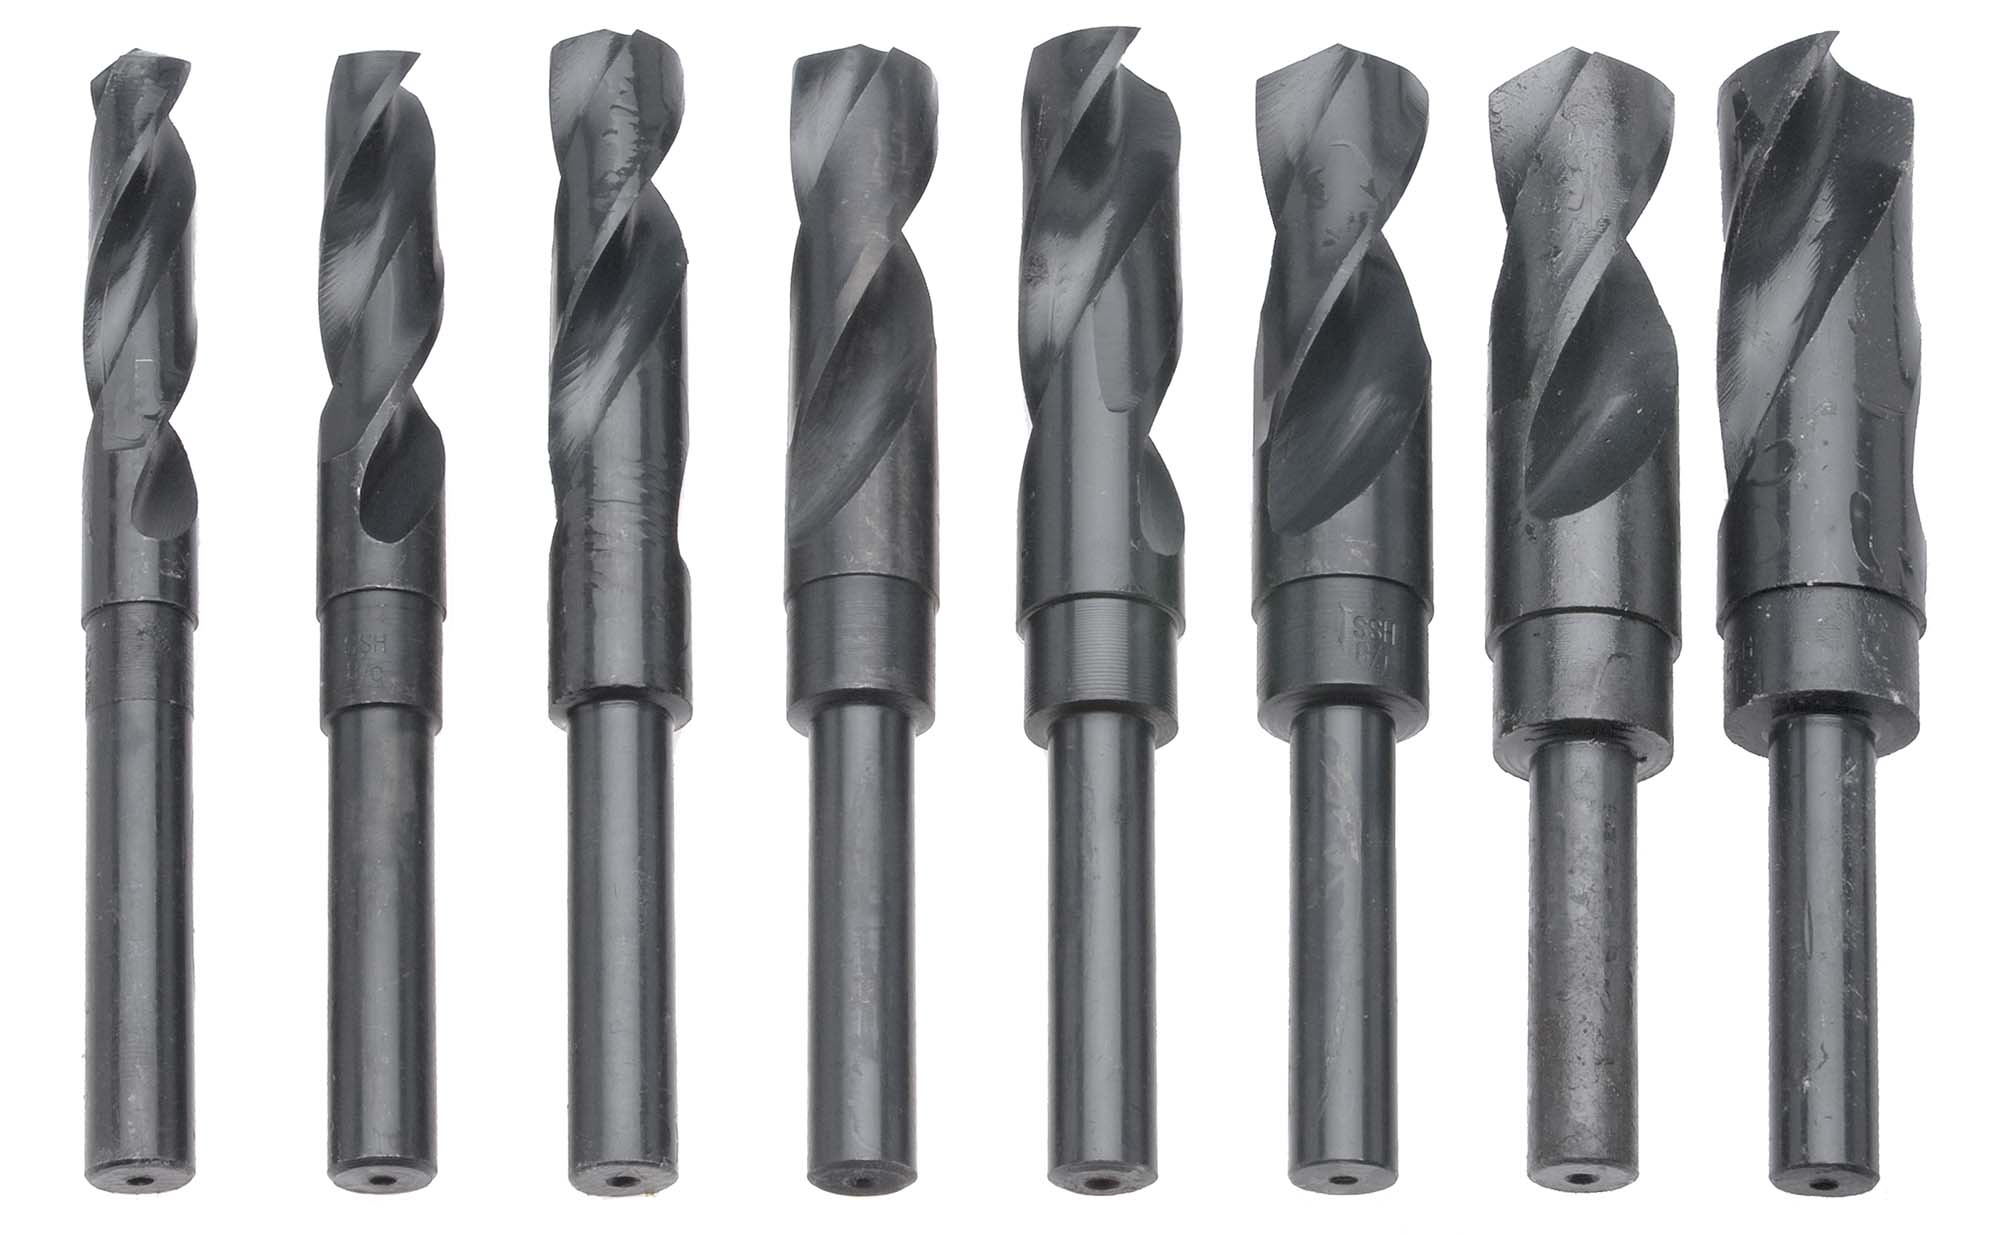 "8 Piece S+D Drill Set, 9/16-1"" by 16ths"